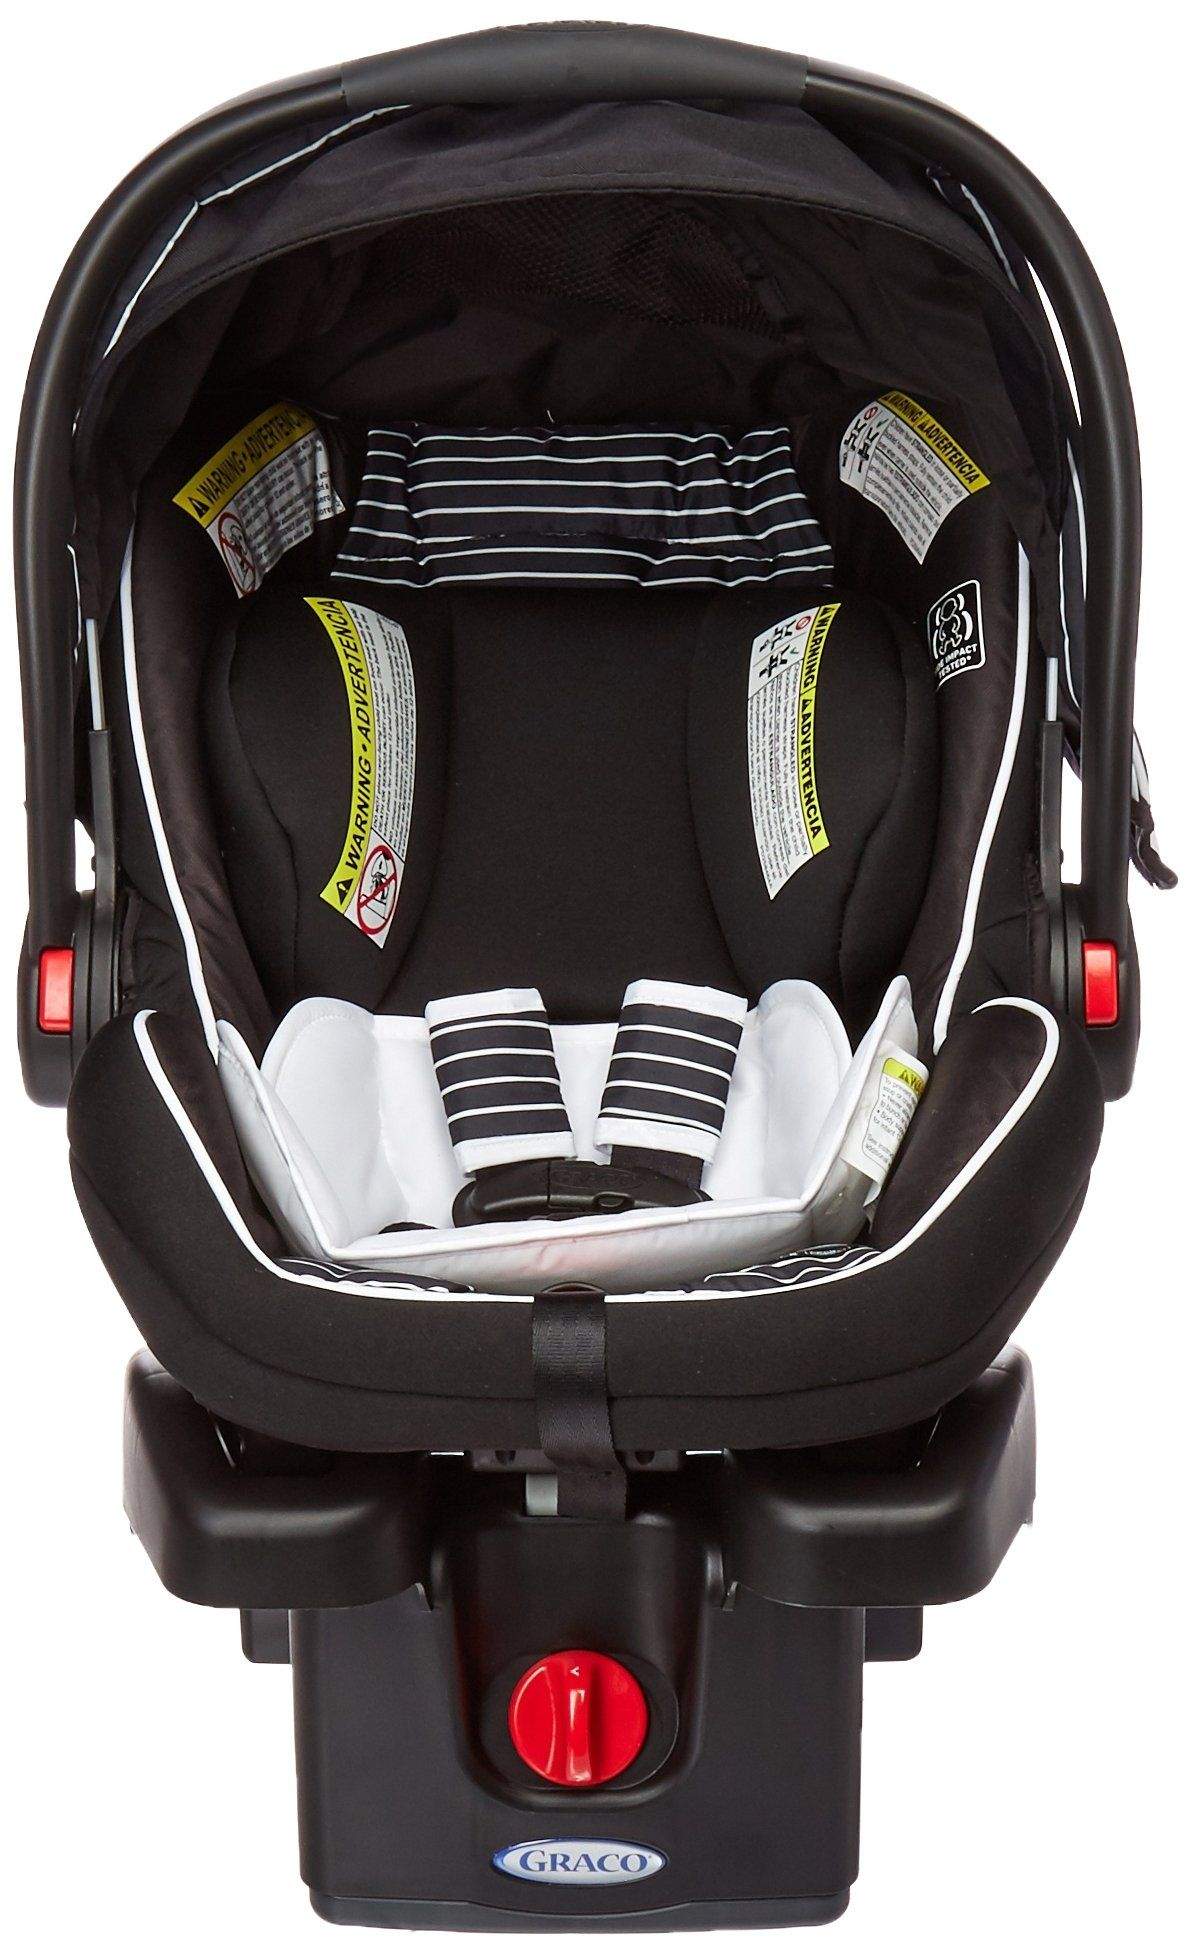 Graco Snugride35 LX Click Connect Infant Car Seat Studio You Can Find Out More